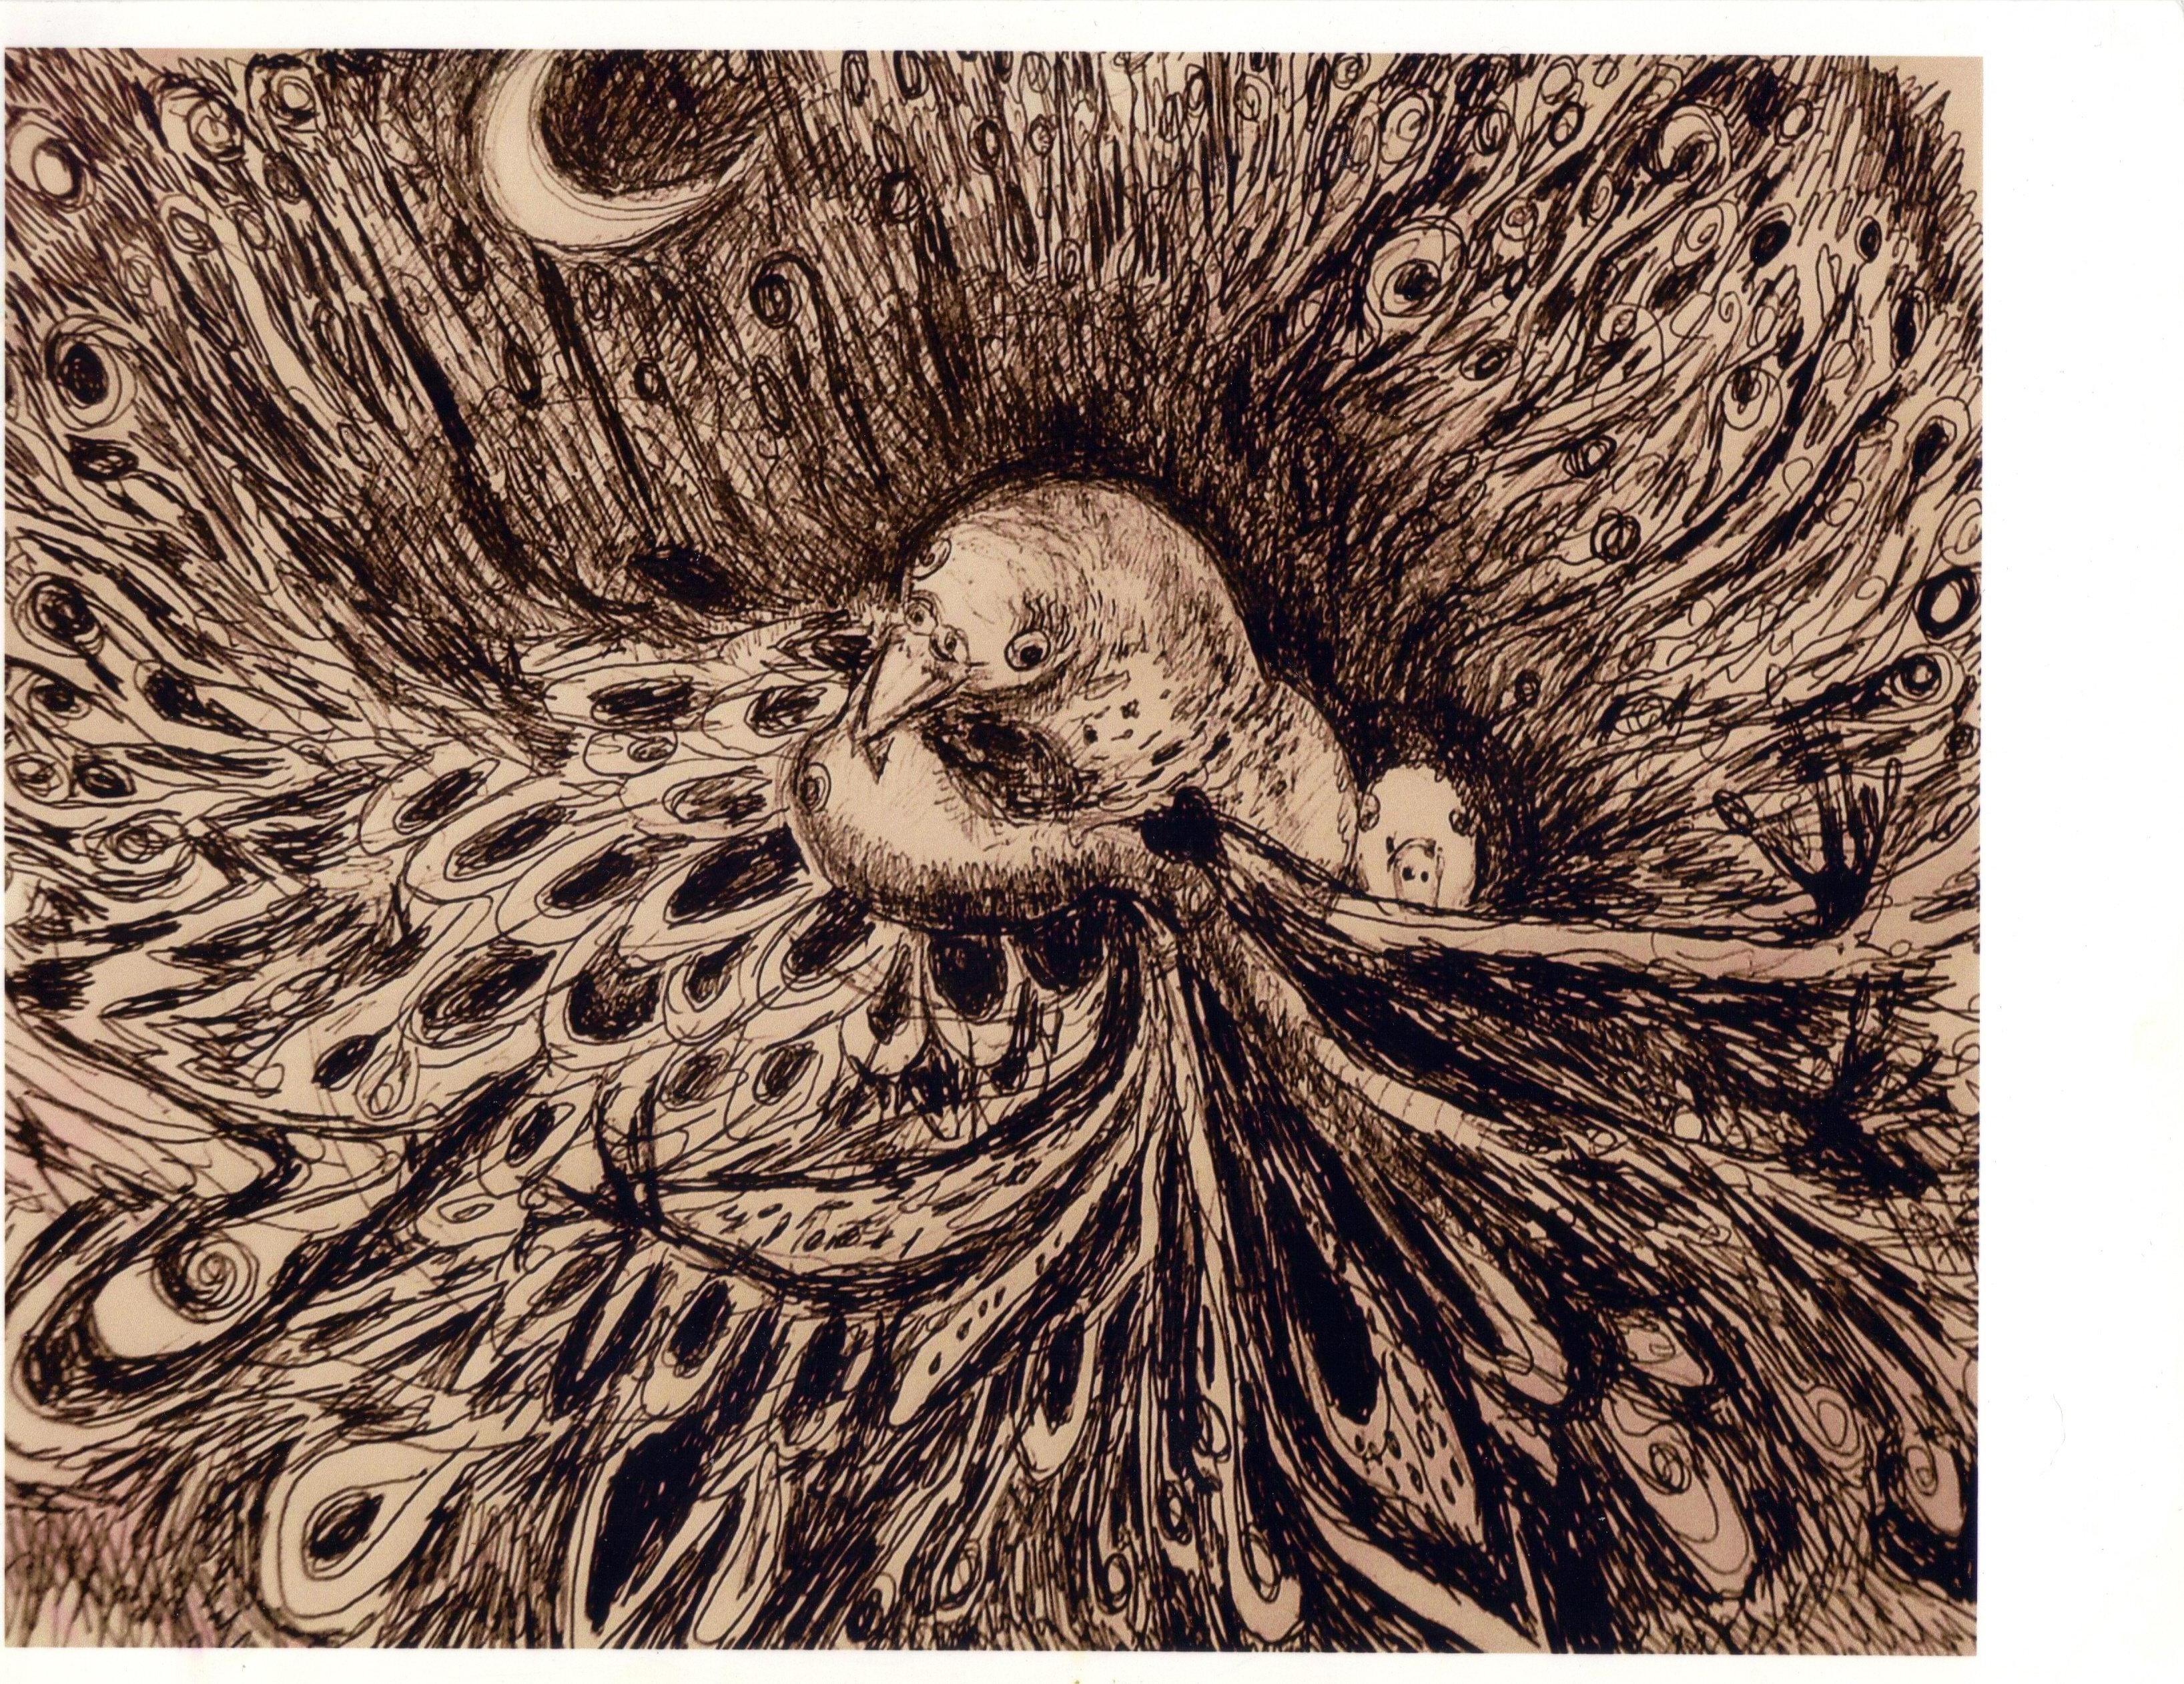 3273x2523 Marilyn Nosewicz Artwork Birds Nest Chaos Crescent Moon Drawing